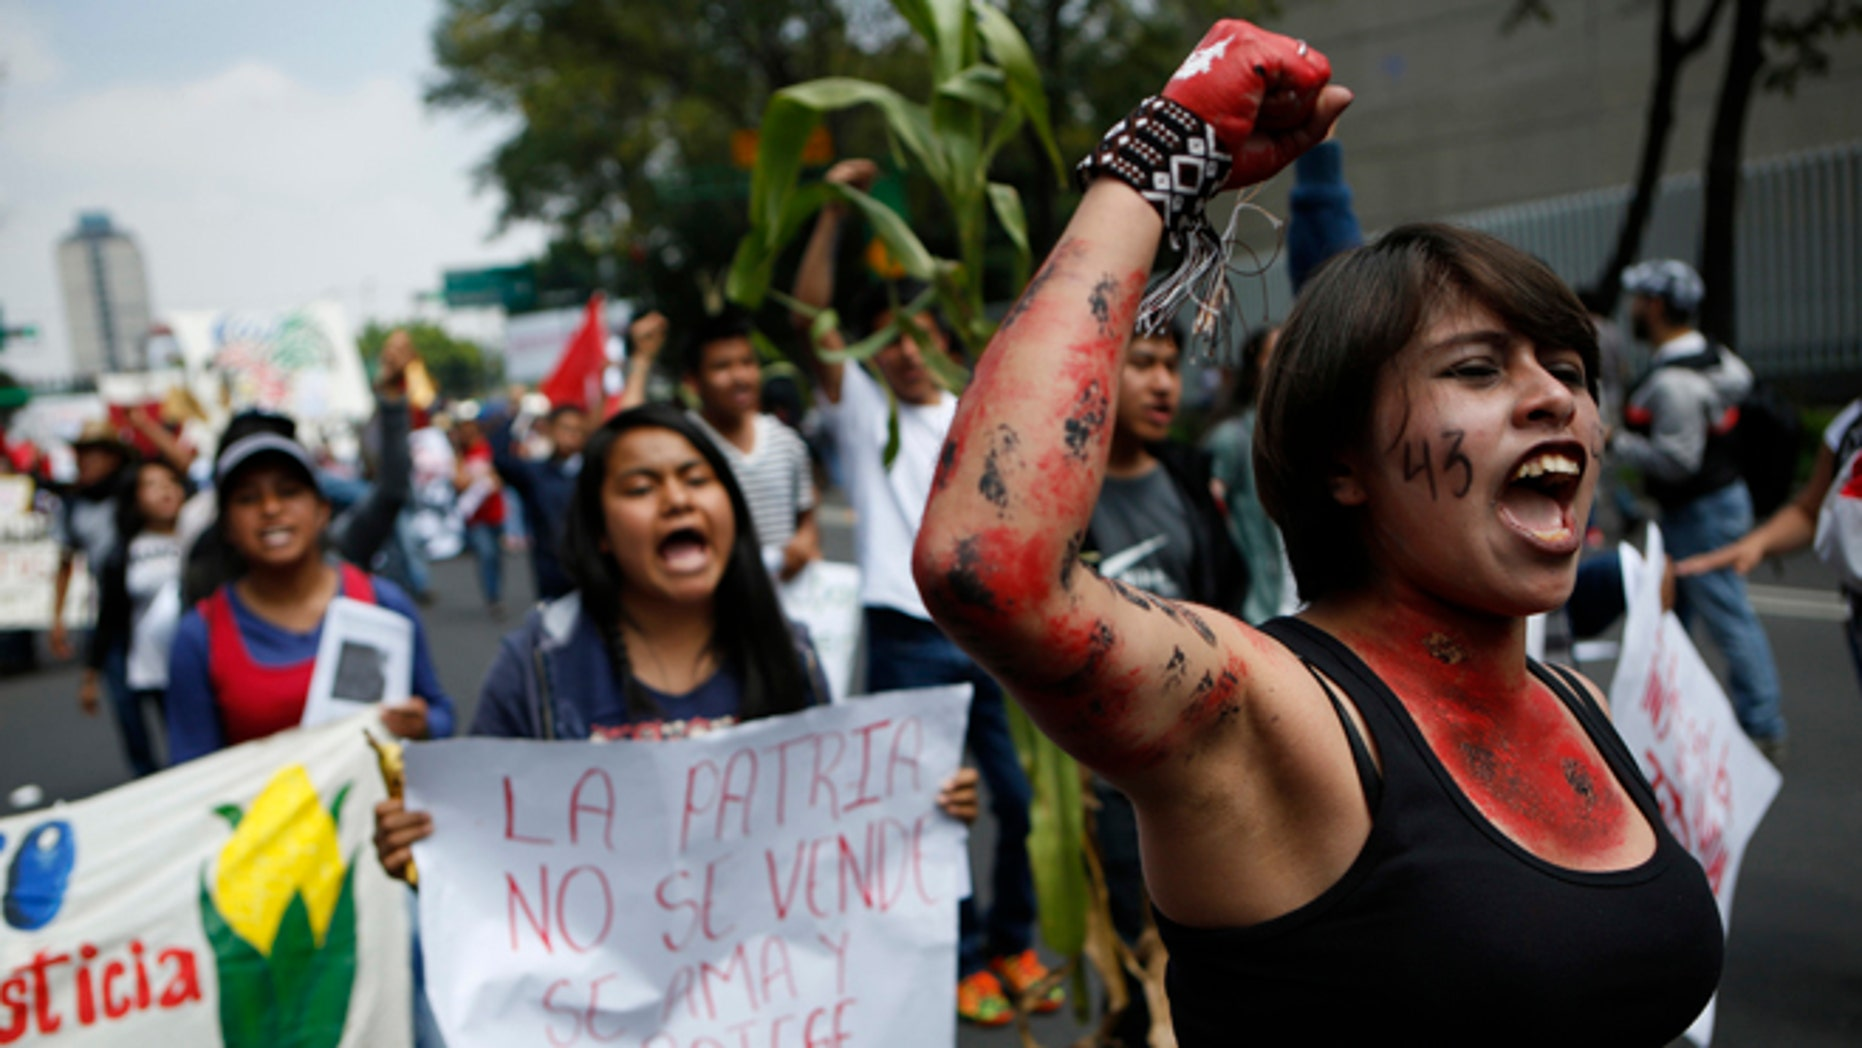 Protestors chant during a march commemorating the anniversary of the Tlatelolco Massacre, in Mexico City, Sunday, Oct. 2, 2016. Every year Mexico marks the anniversary of the 1968 massacre where students and civilians were killed by the military and police.(AP Photo/Rebecca Blackwell)